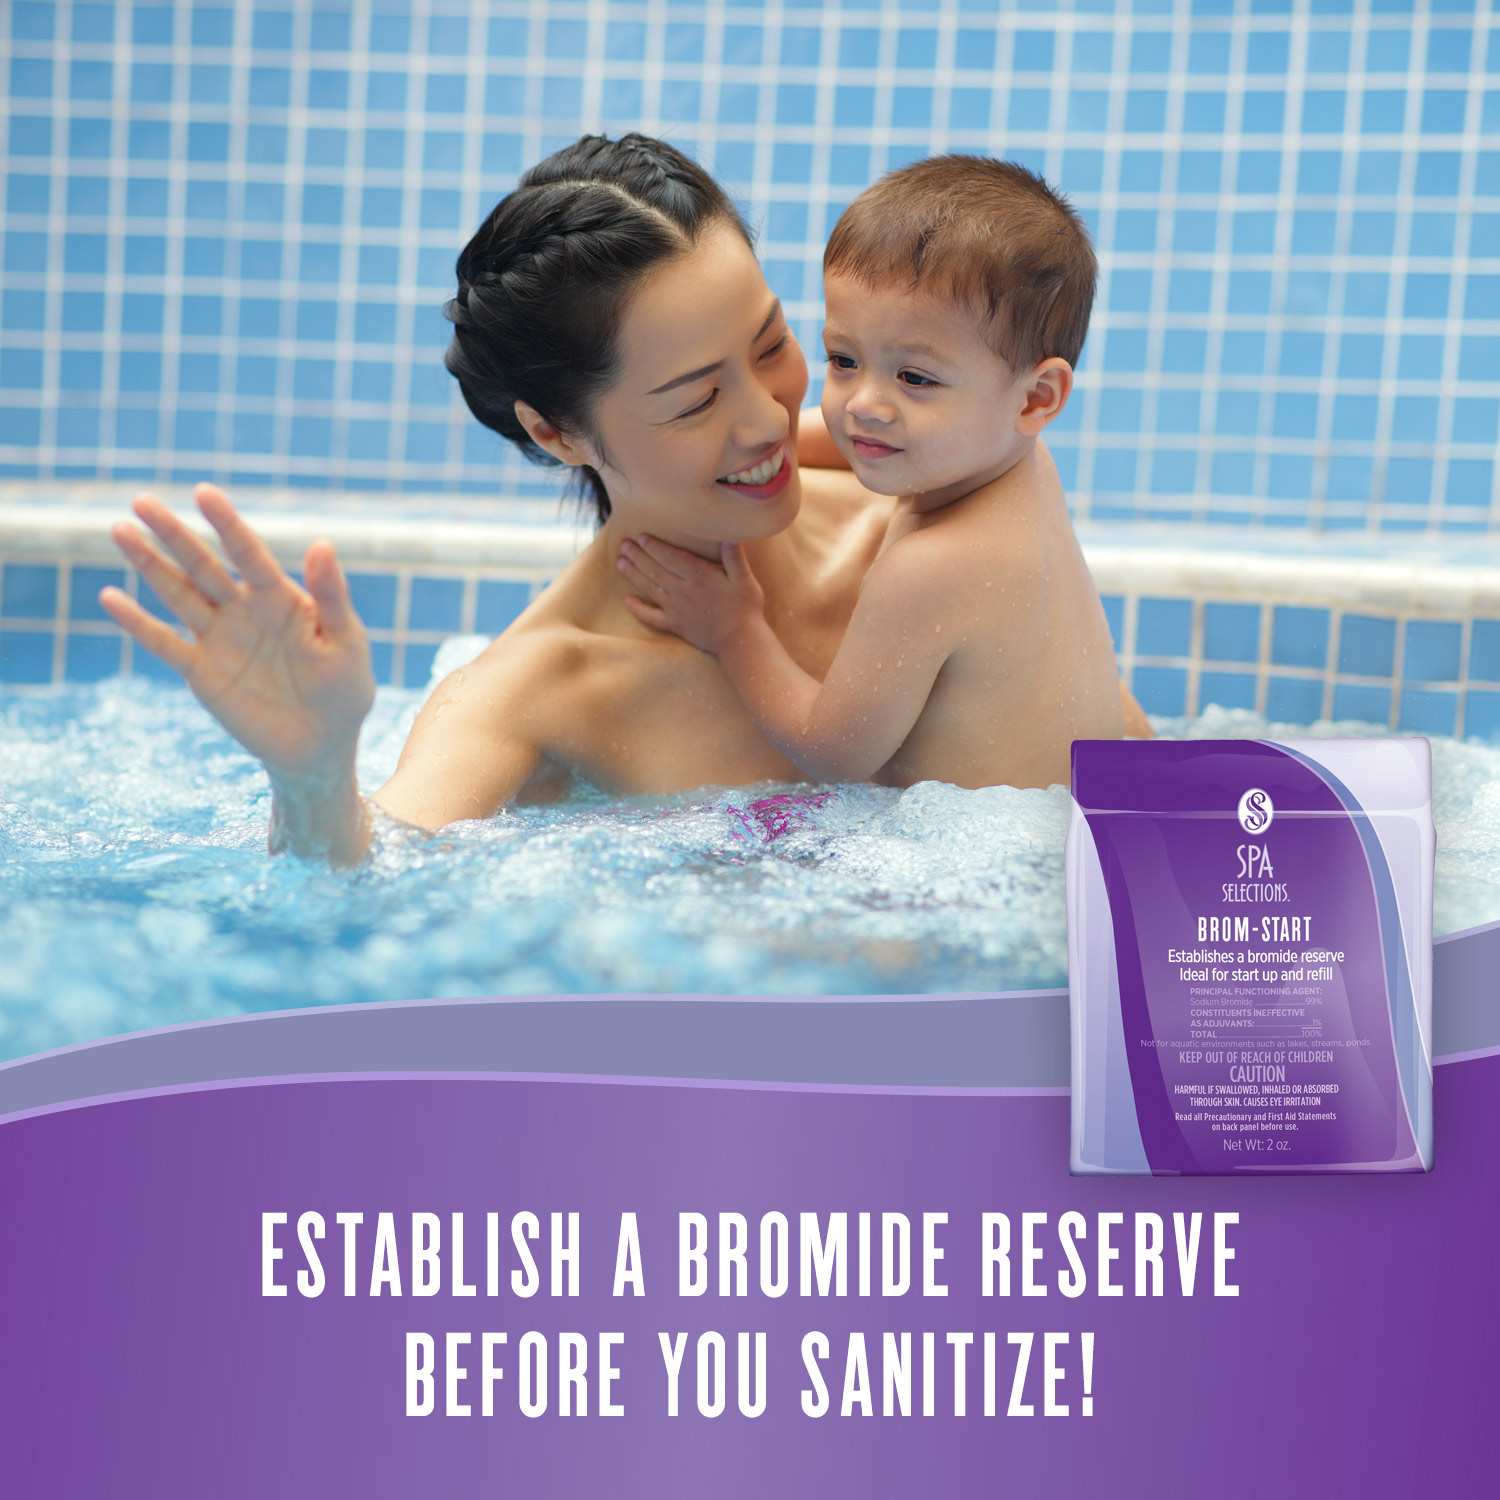 Mother holding young child enjoying a hot tub. Establish a bromide reserve before you sanitize with Spa Selections Brom-Start!